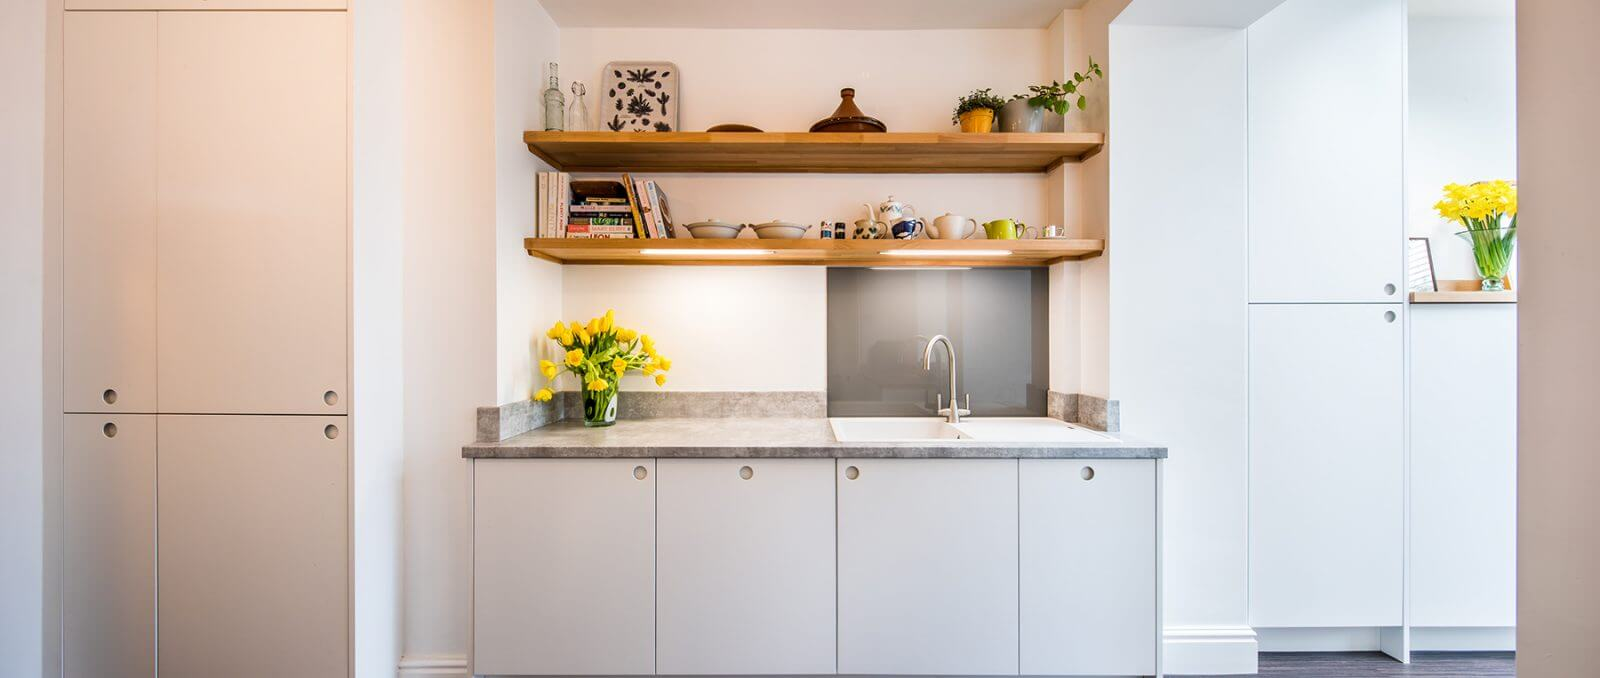 scandi new kitchen with white cabinet doors and circular cutout pull handles and open shelving